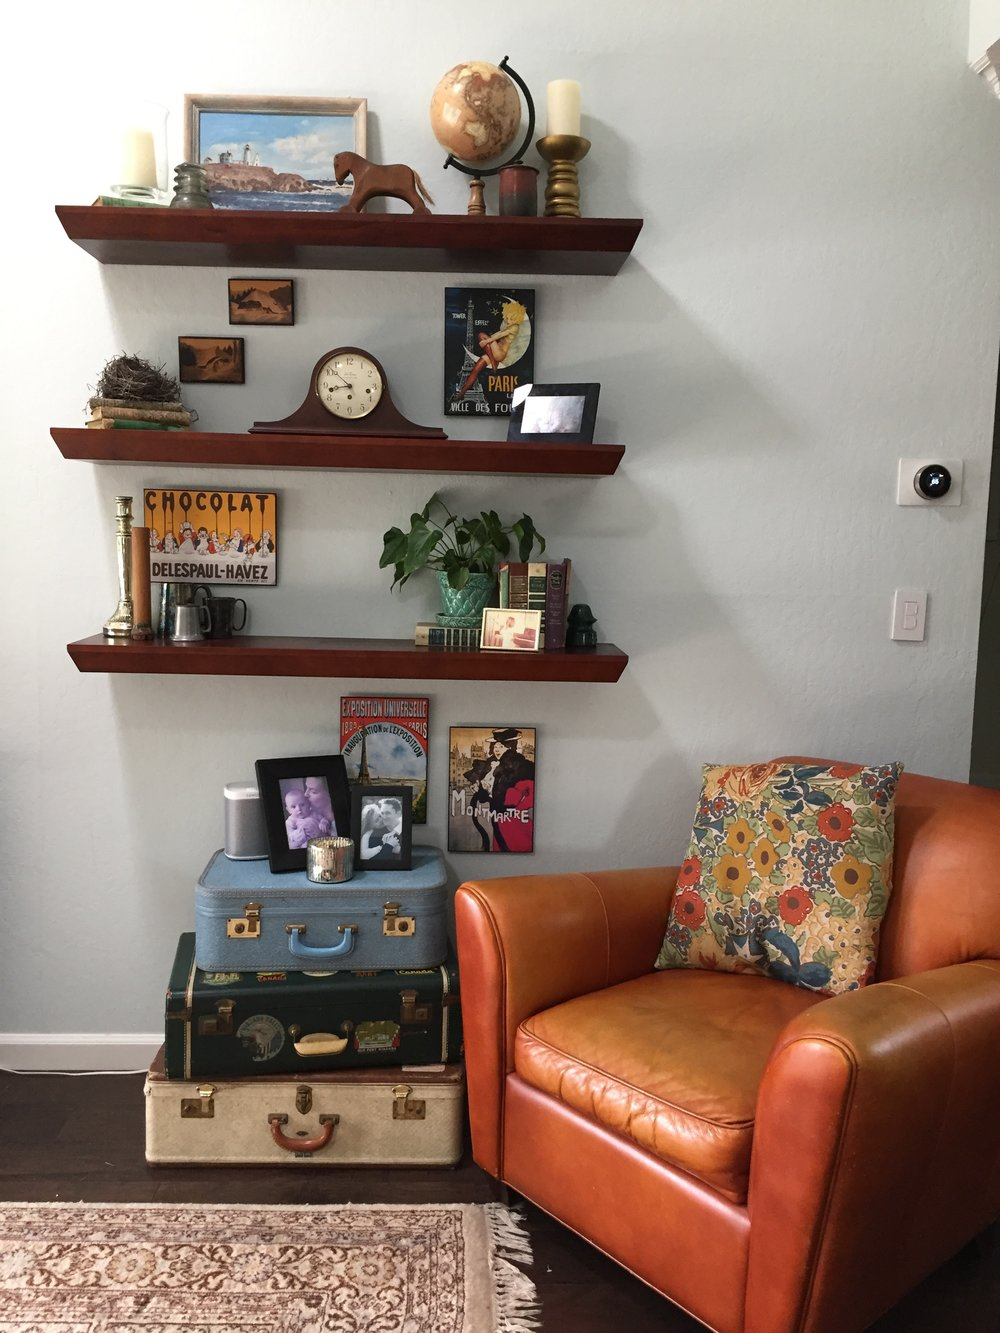 Home redesign using clients existing items creating an updated look for their space on a budget.